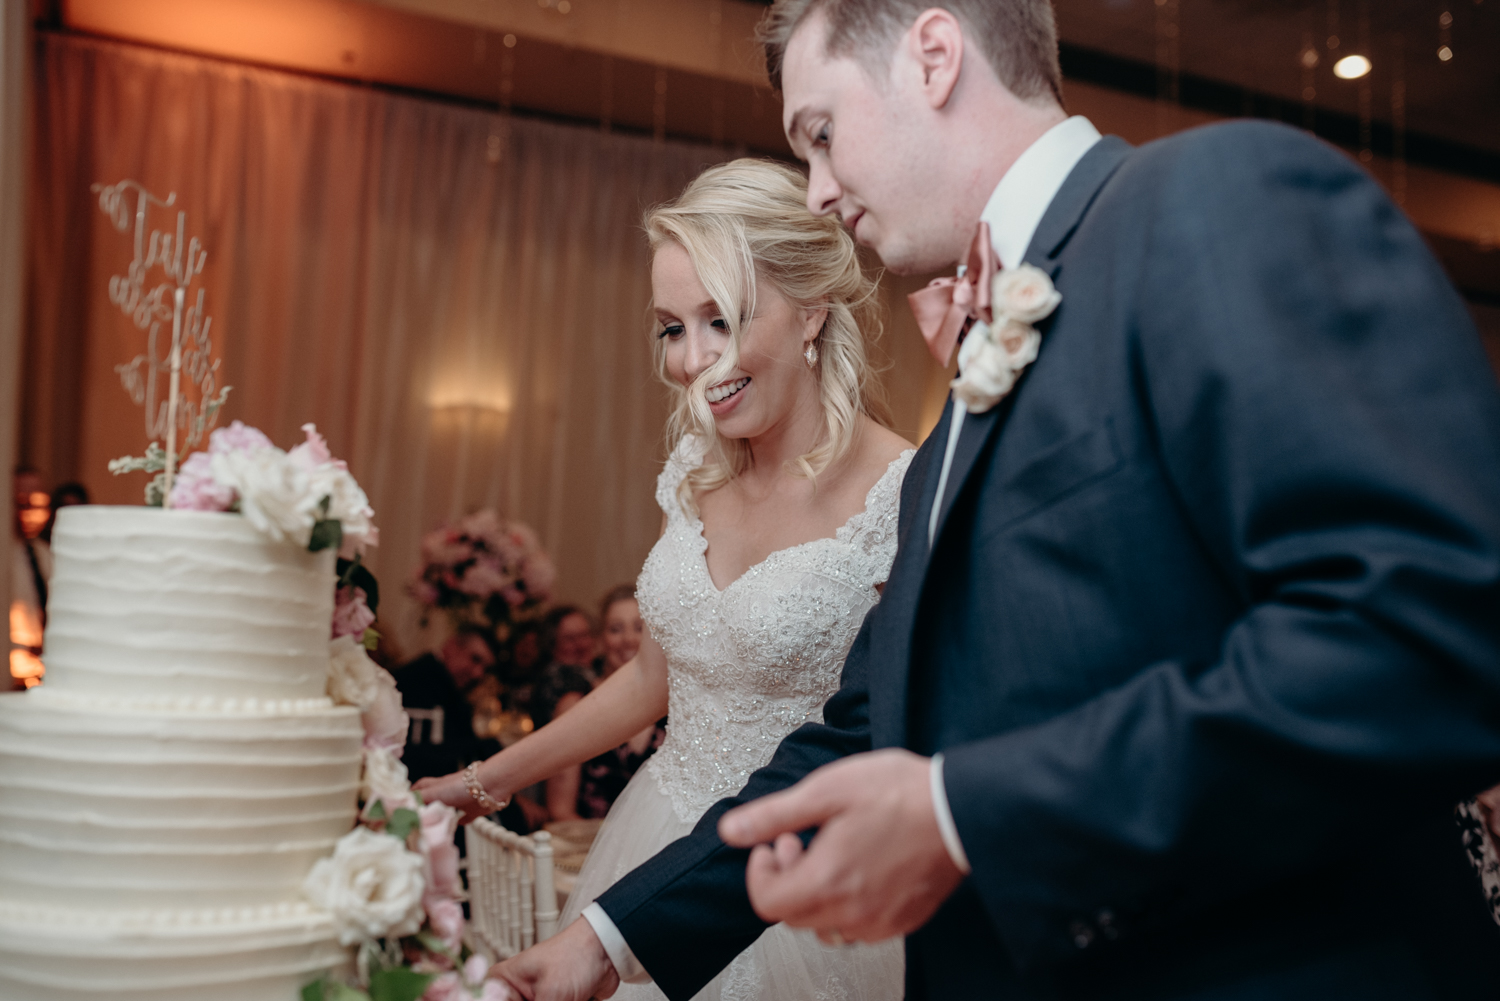 A bride and groom cut the cake at their wedding reception at Lansdowne Resort.